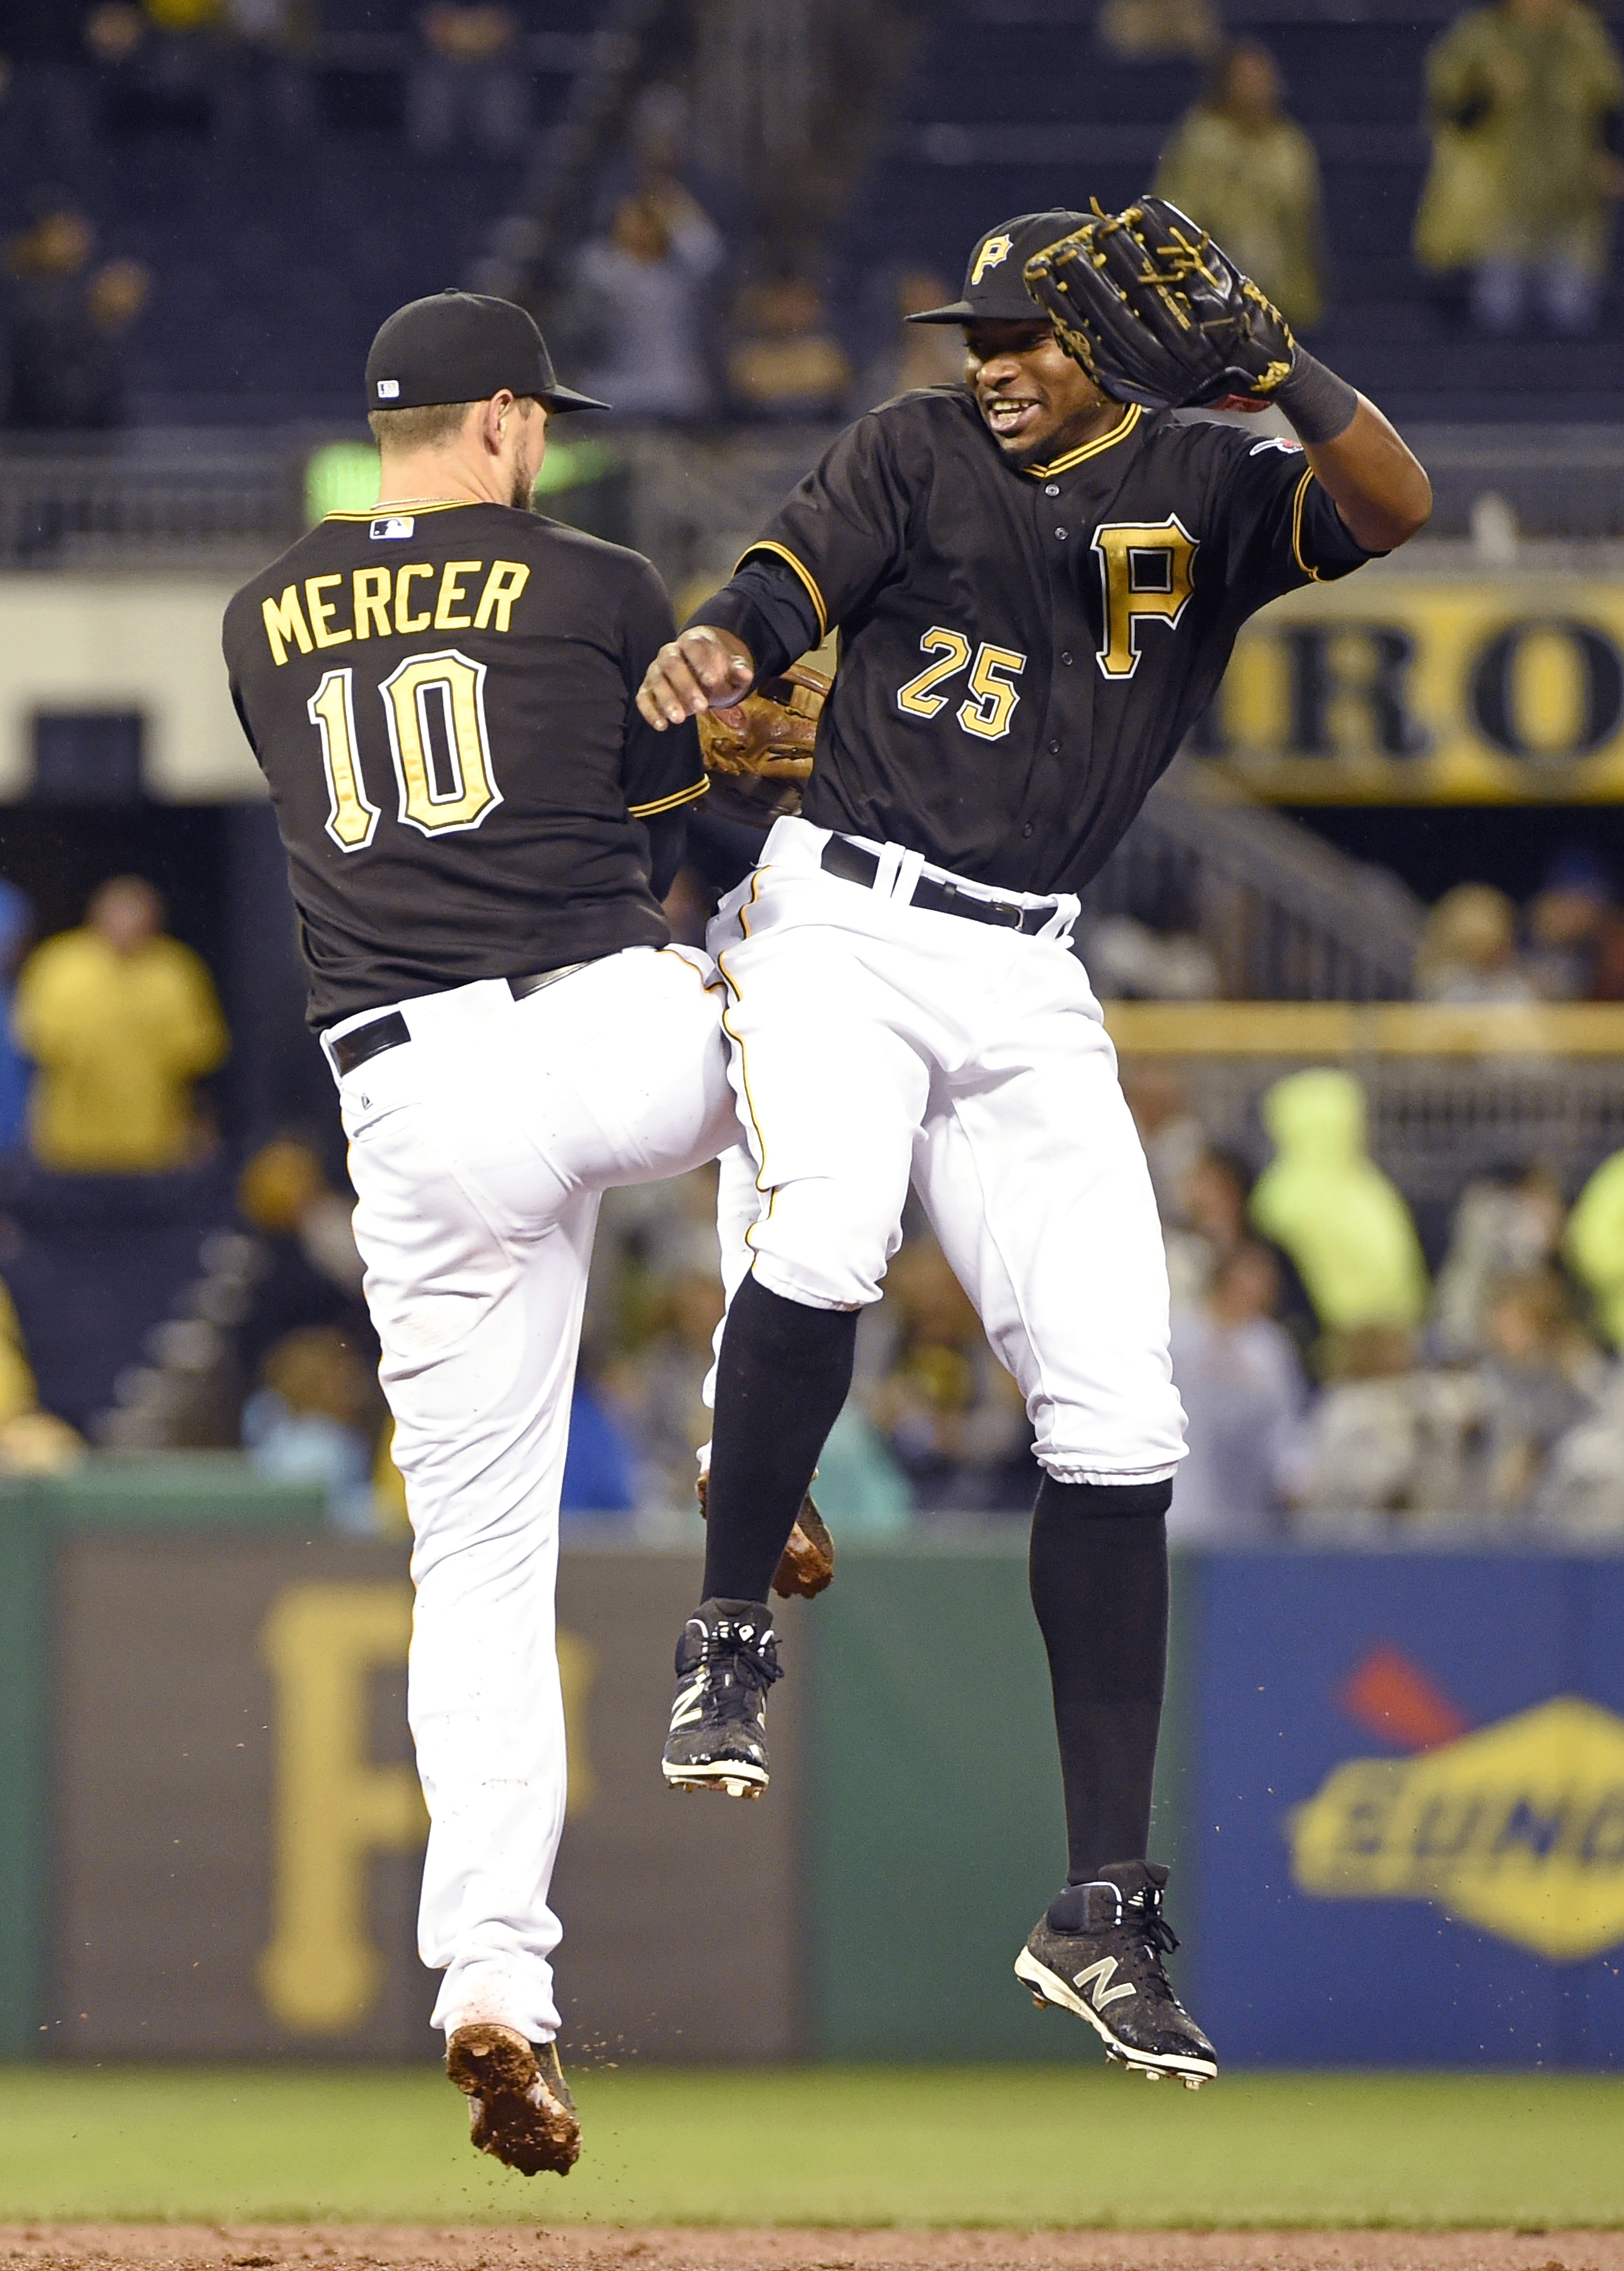 Pittsburgh Pirates' Jordy Mercer (10) and Gregory Polanco (25) celebrate their 10-2 victory over the Milwaukee Brewers, Saturday, Sept. 12, 2015, in Pittsburgh. (AP Photo/Fred Vuich)